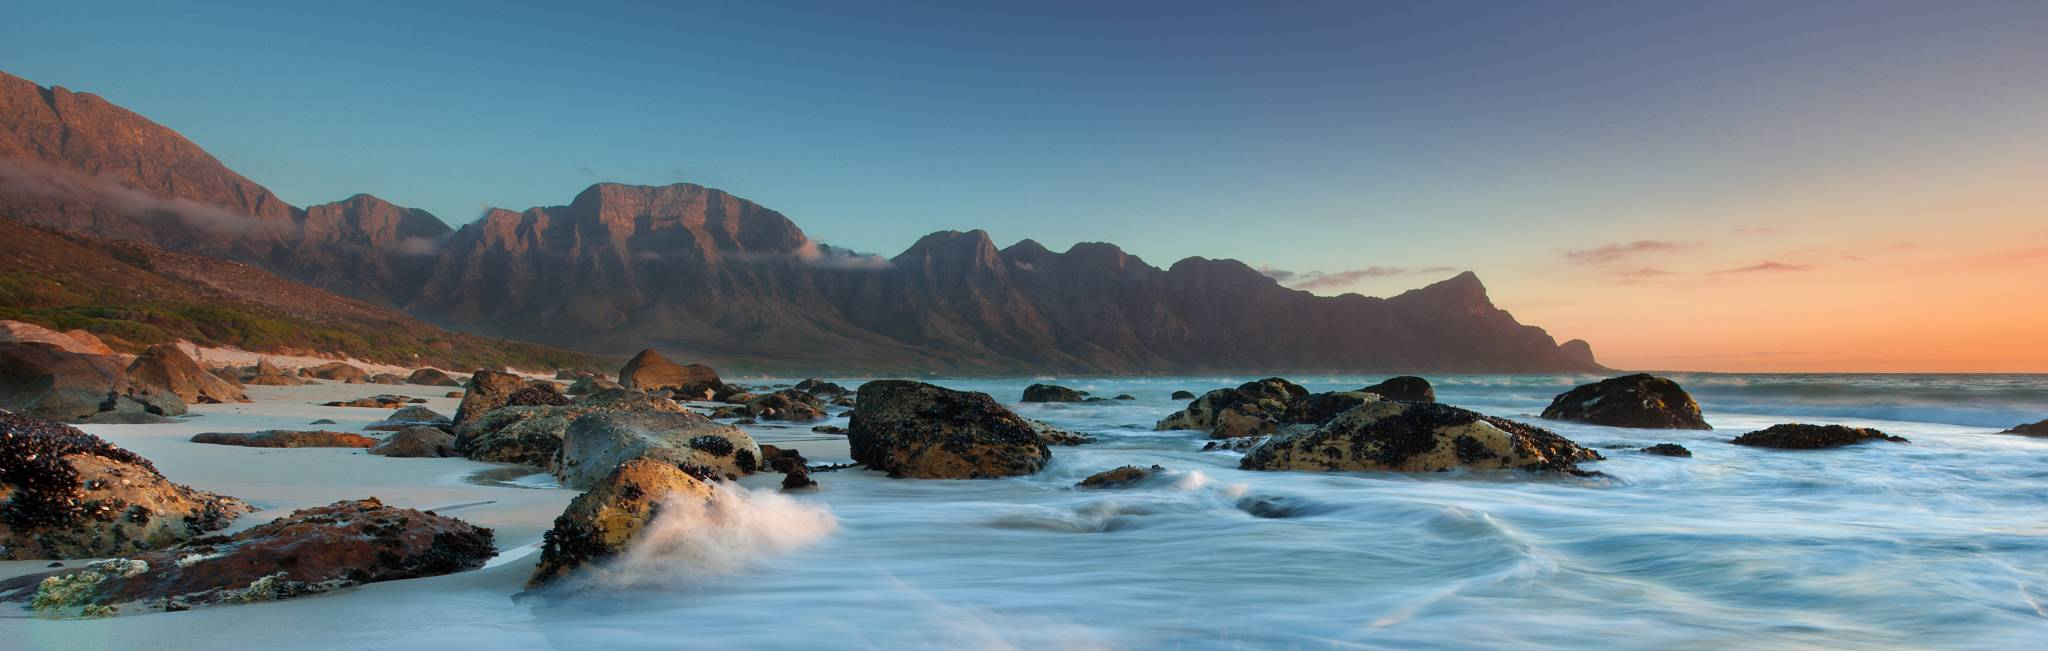 The sun sets over Kogel Bay in the Cape Province, South Africa